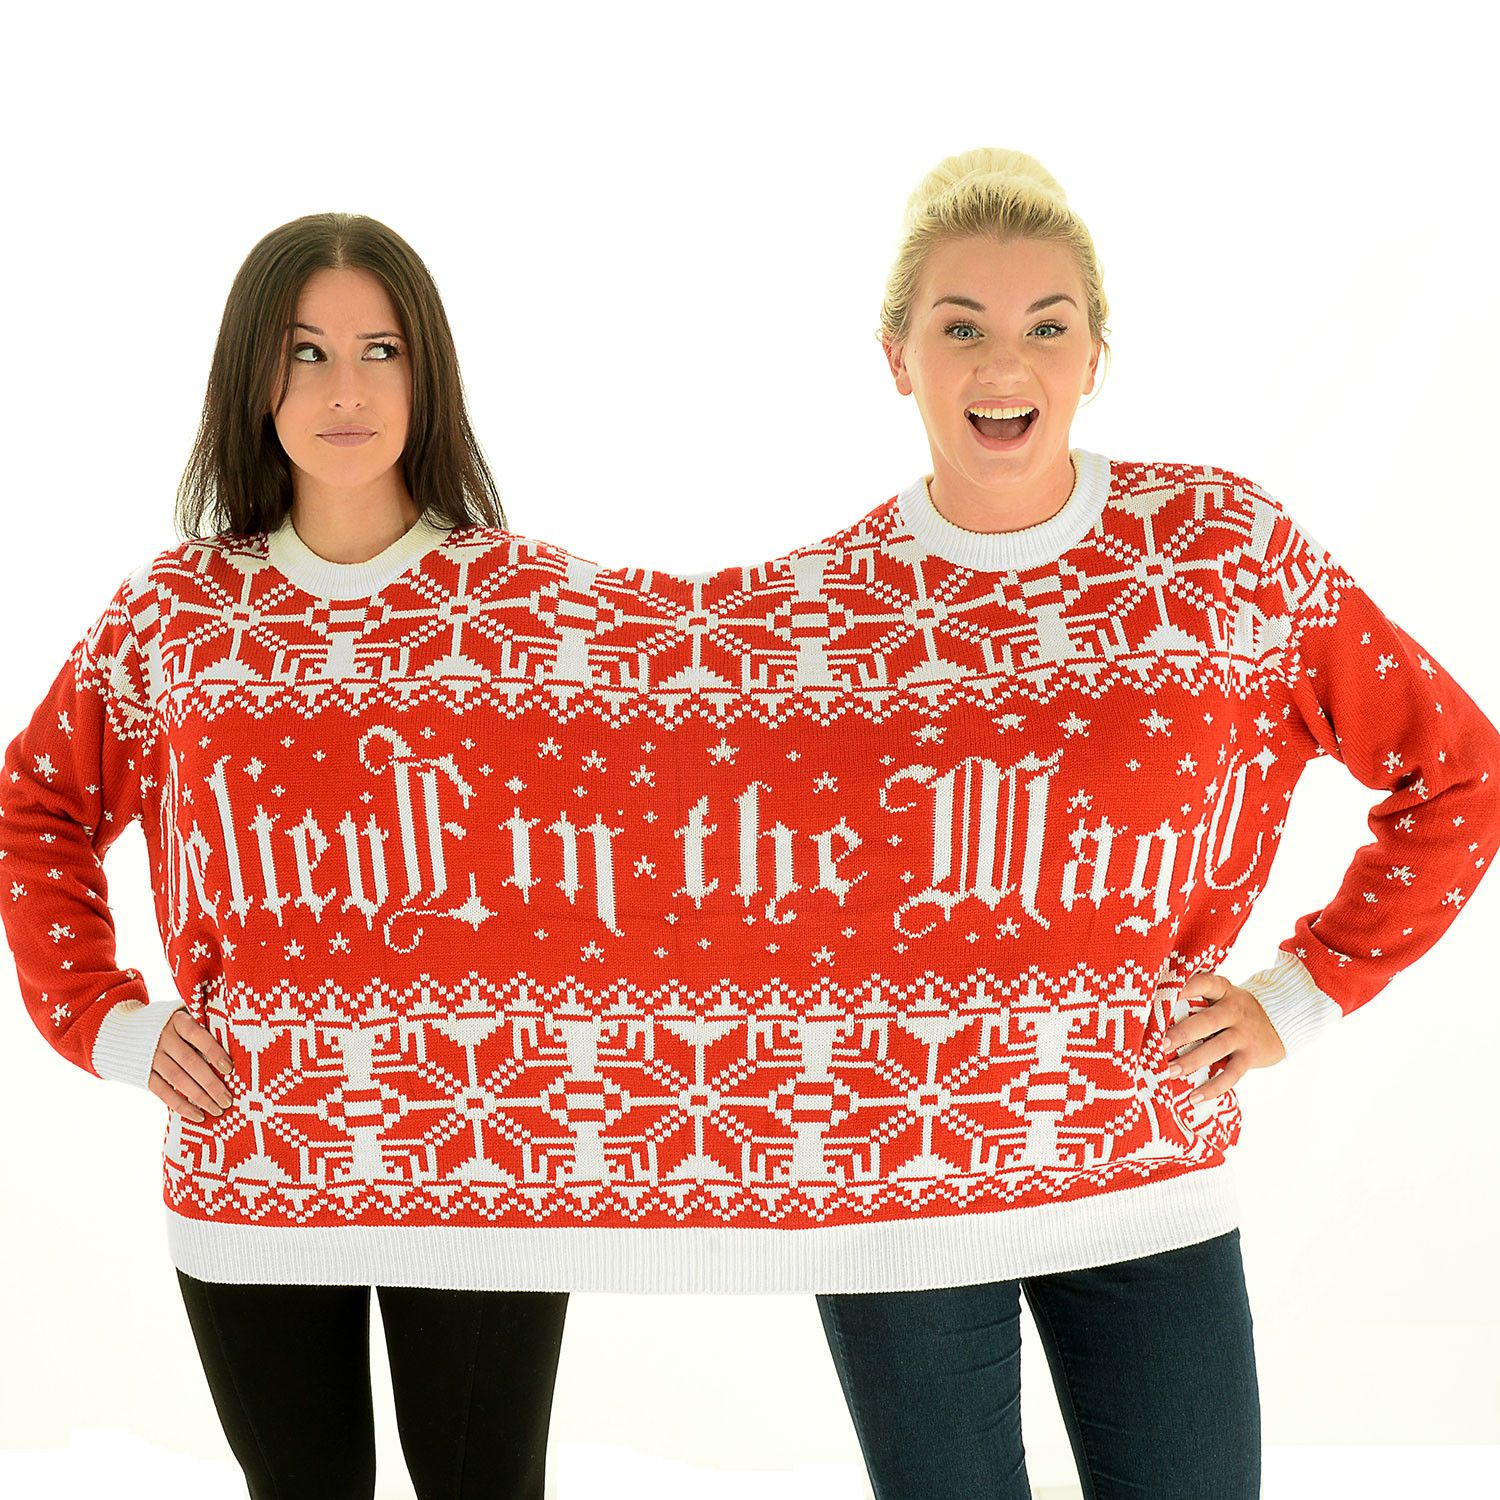 2 Person Christmas Sweater.Believe In The Magic Bff Twosie 2 Person Christmas Sweater